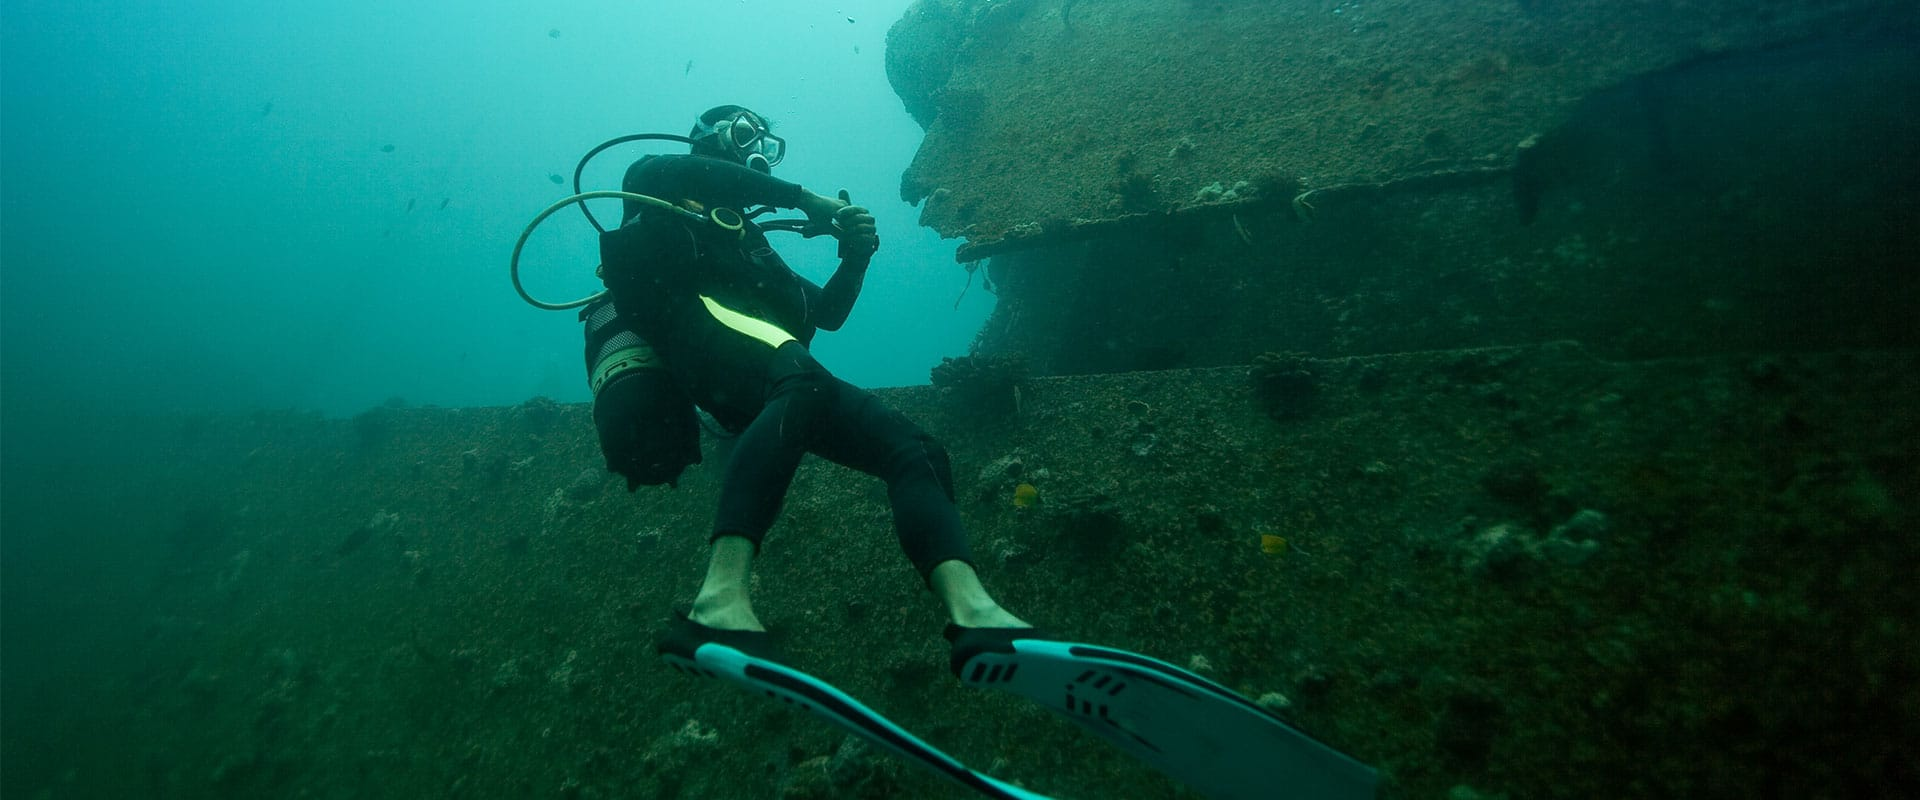 Dive and explore shipwrecks with secrets waiting for you to uncover